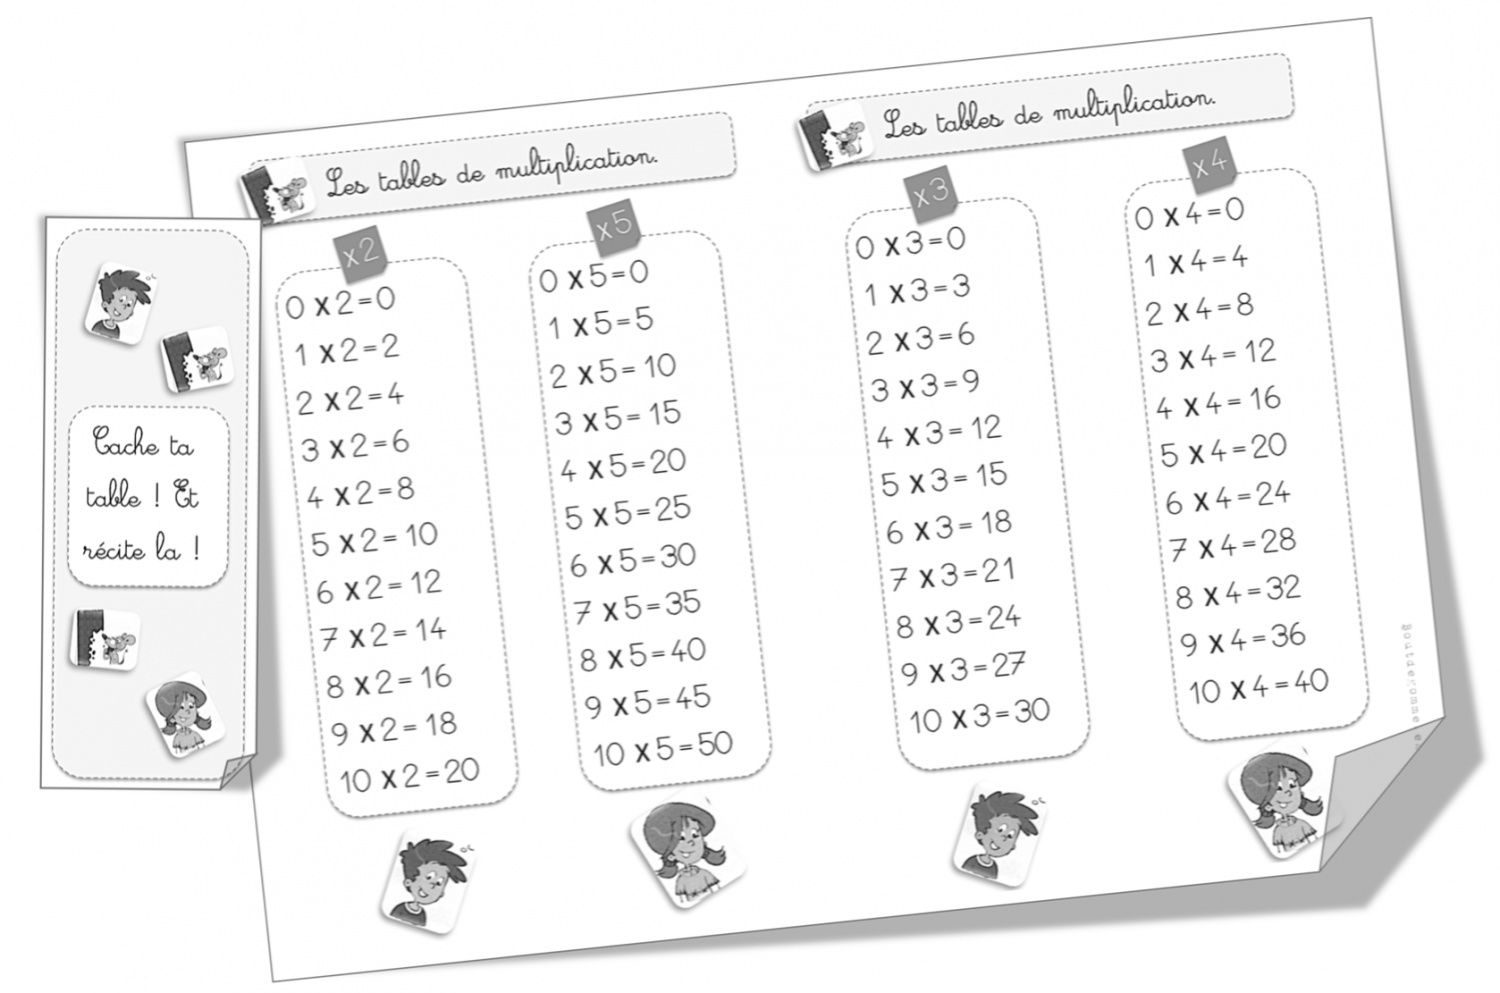 Tables de multiplication ce1 bout de gomme for Table de multiplication de 6 7 8 9